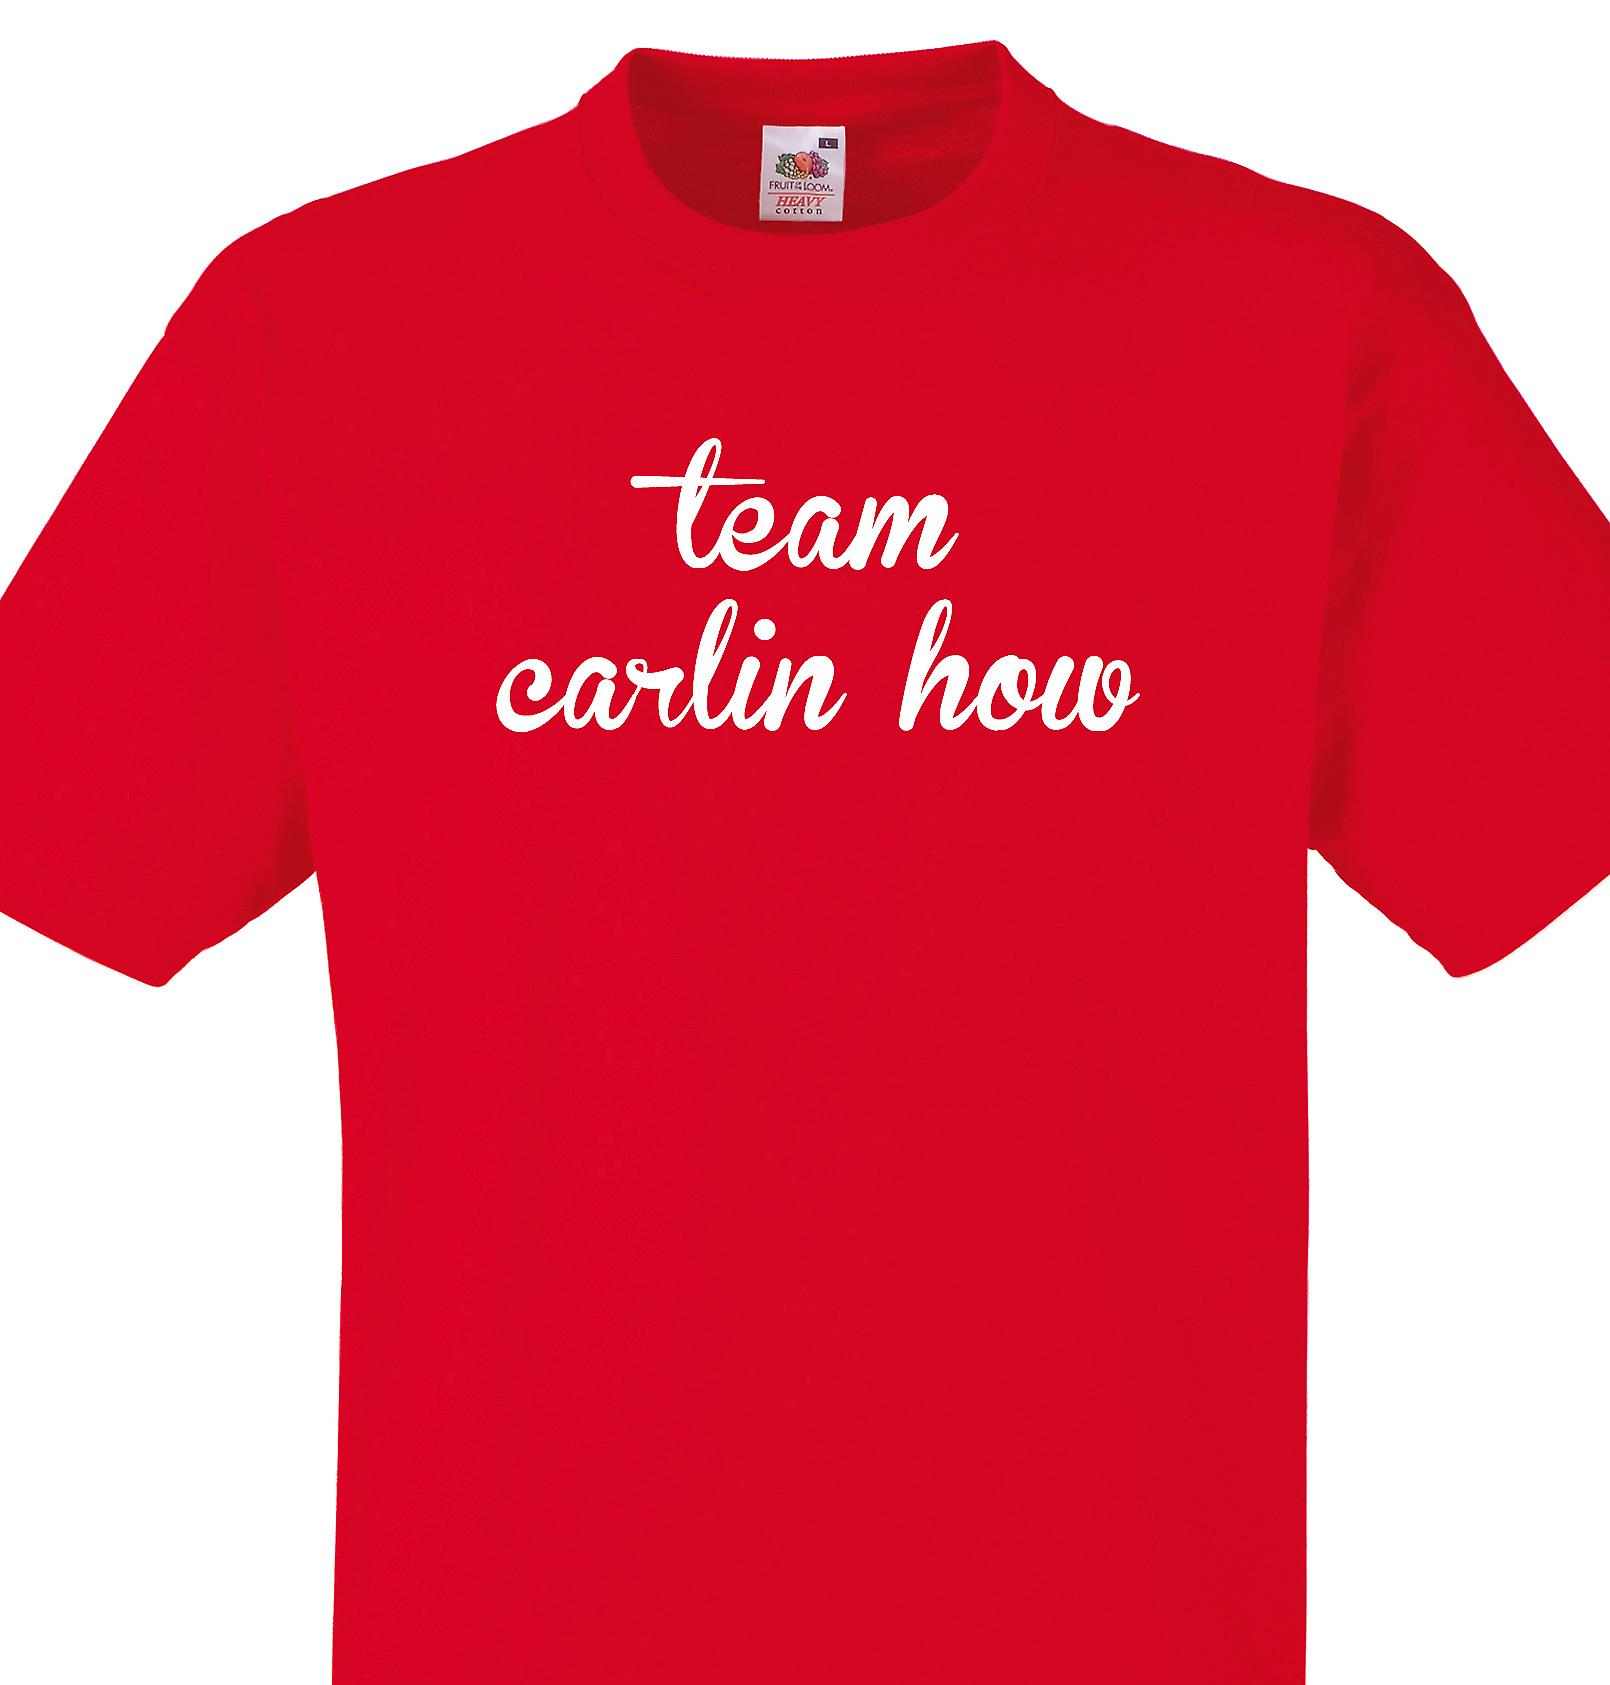 Team Carlin how Red T shirt